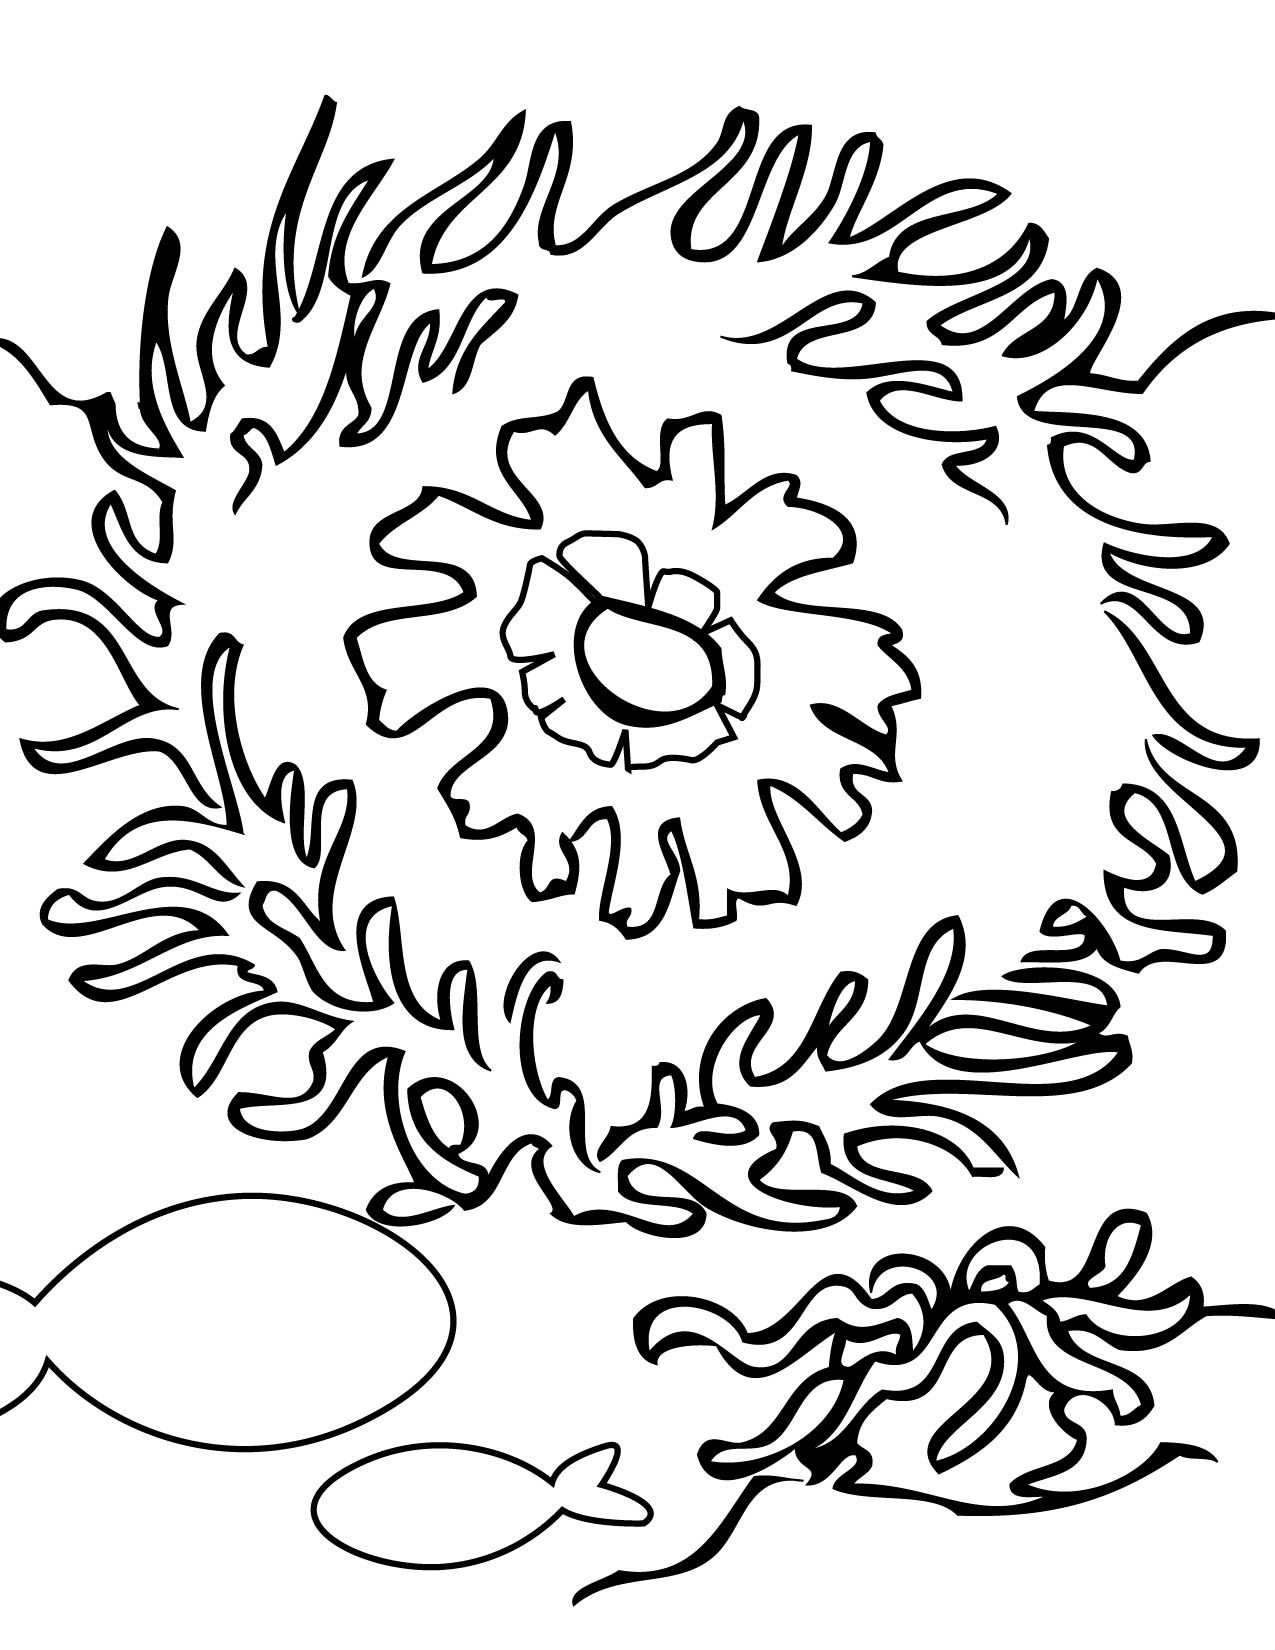 coral coloring pages coral reef coloring pages coral free printable coral coloring pages